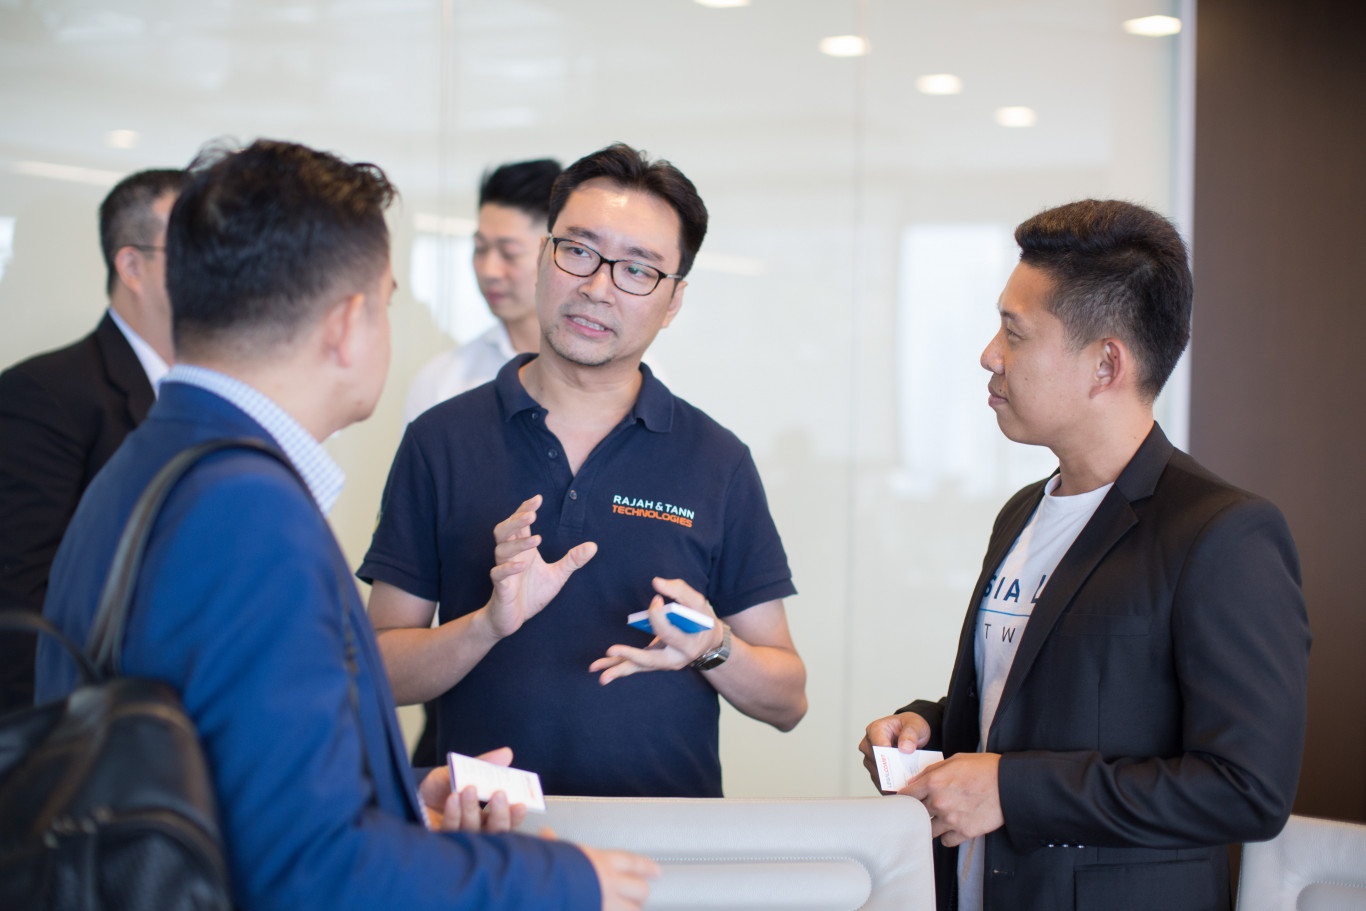 Legal Tech is very important and is supported by Government of Singapore. Lawyer Pham discussed with legal tech experts from Rajah & Tann Tech company